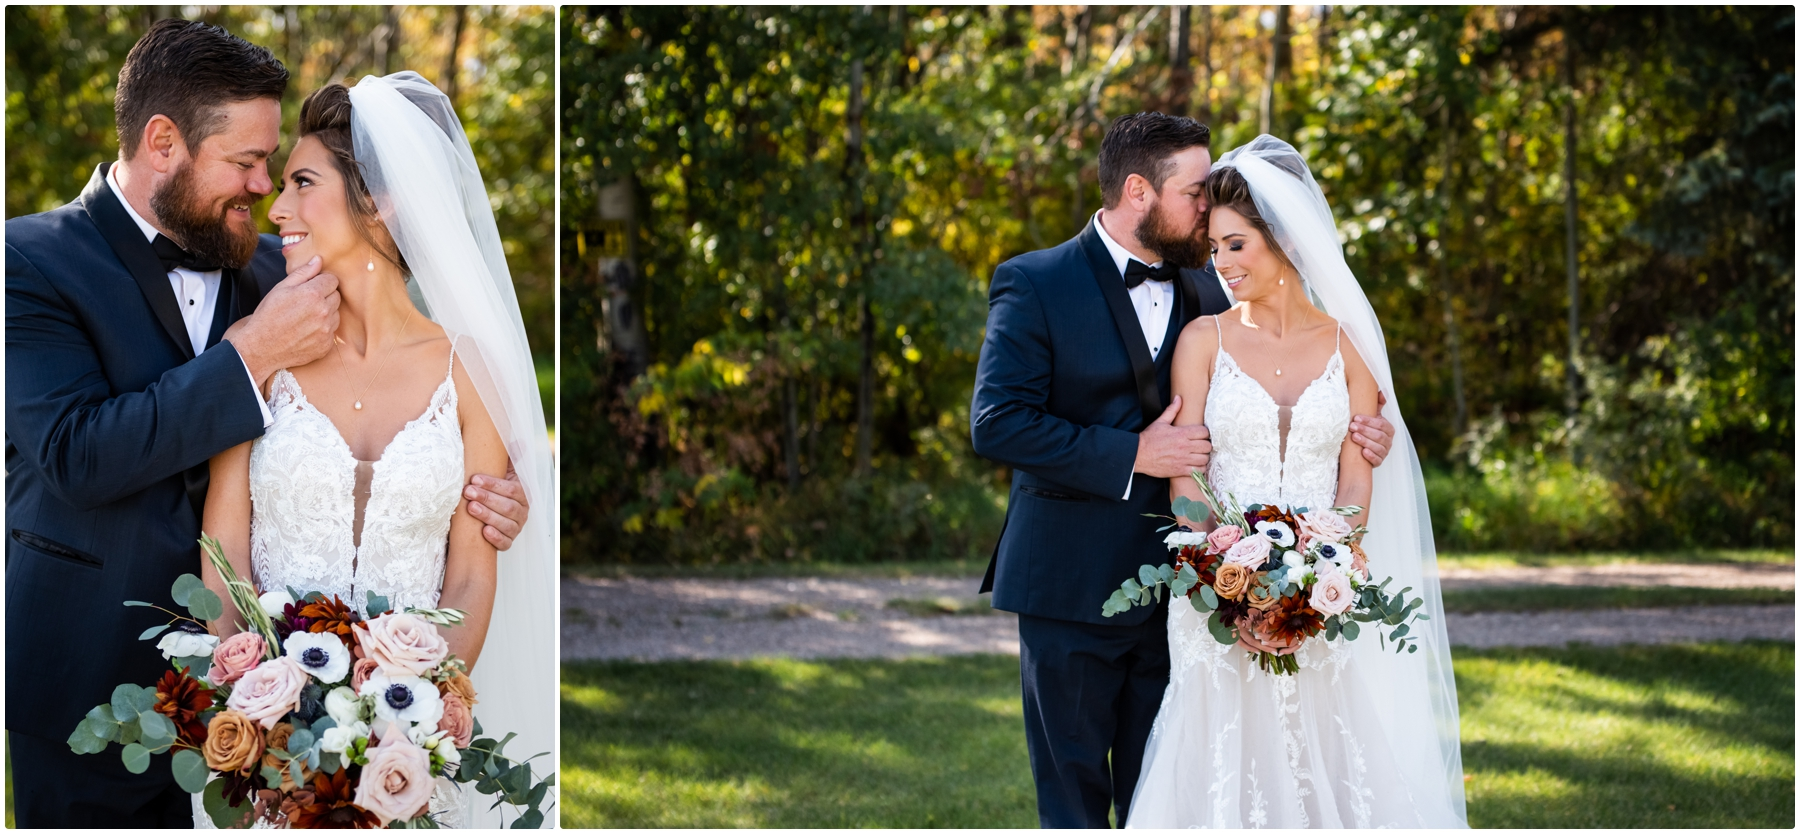 Bride & Groom Portraits - Sweet Haven Barn